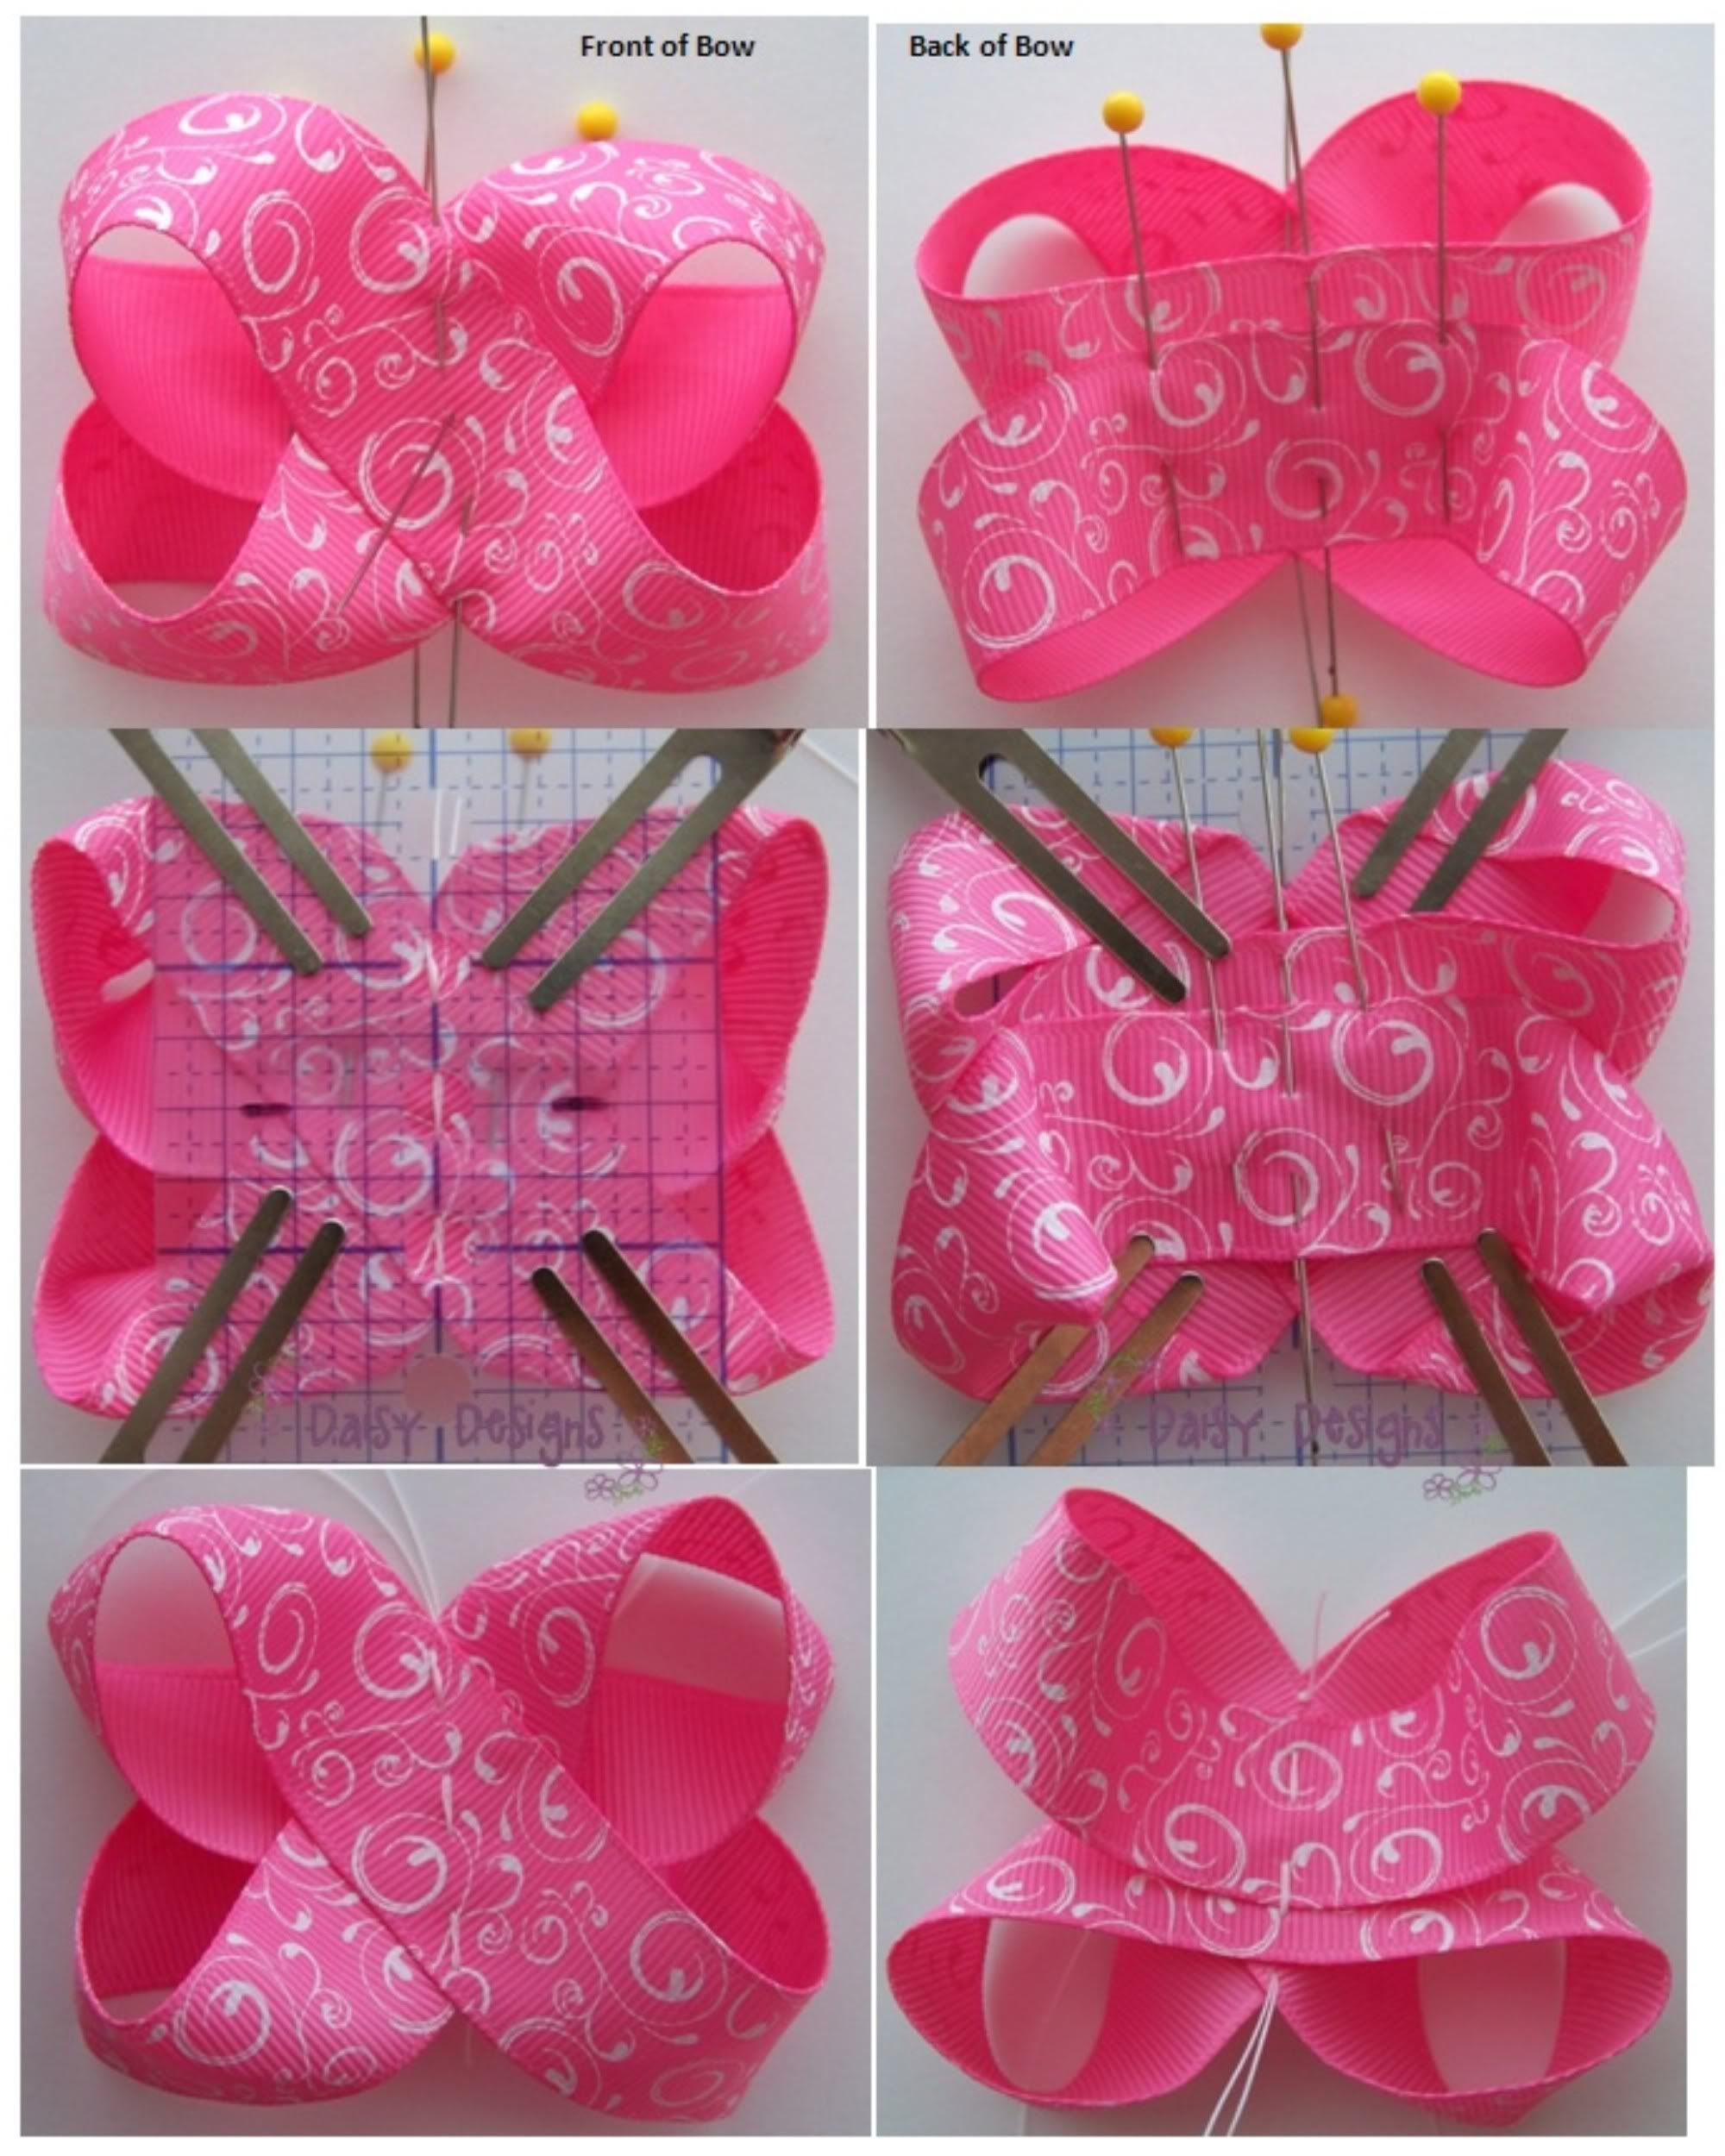 Big southern style hairbows 7 inches bowtutorial hairbows twisted boutique bow instructions photo boutiquebowpage10g baditri Image collections